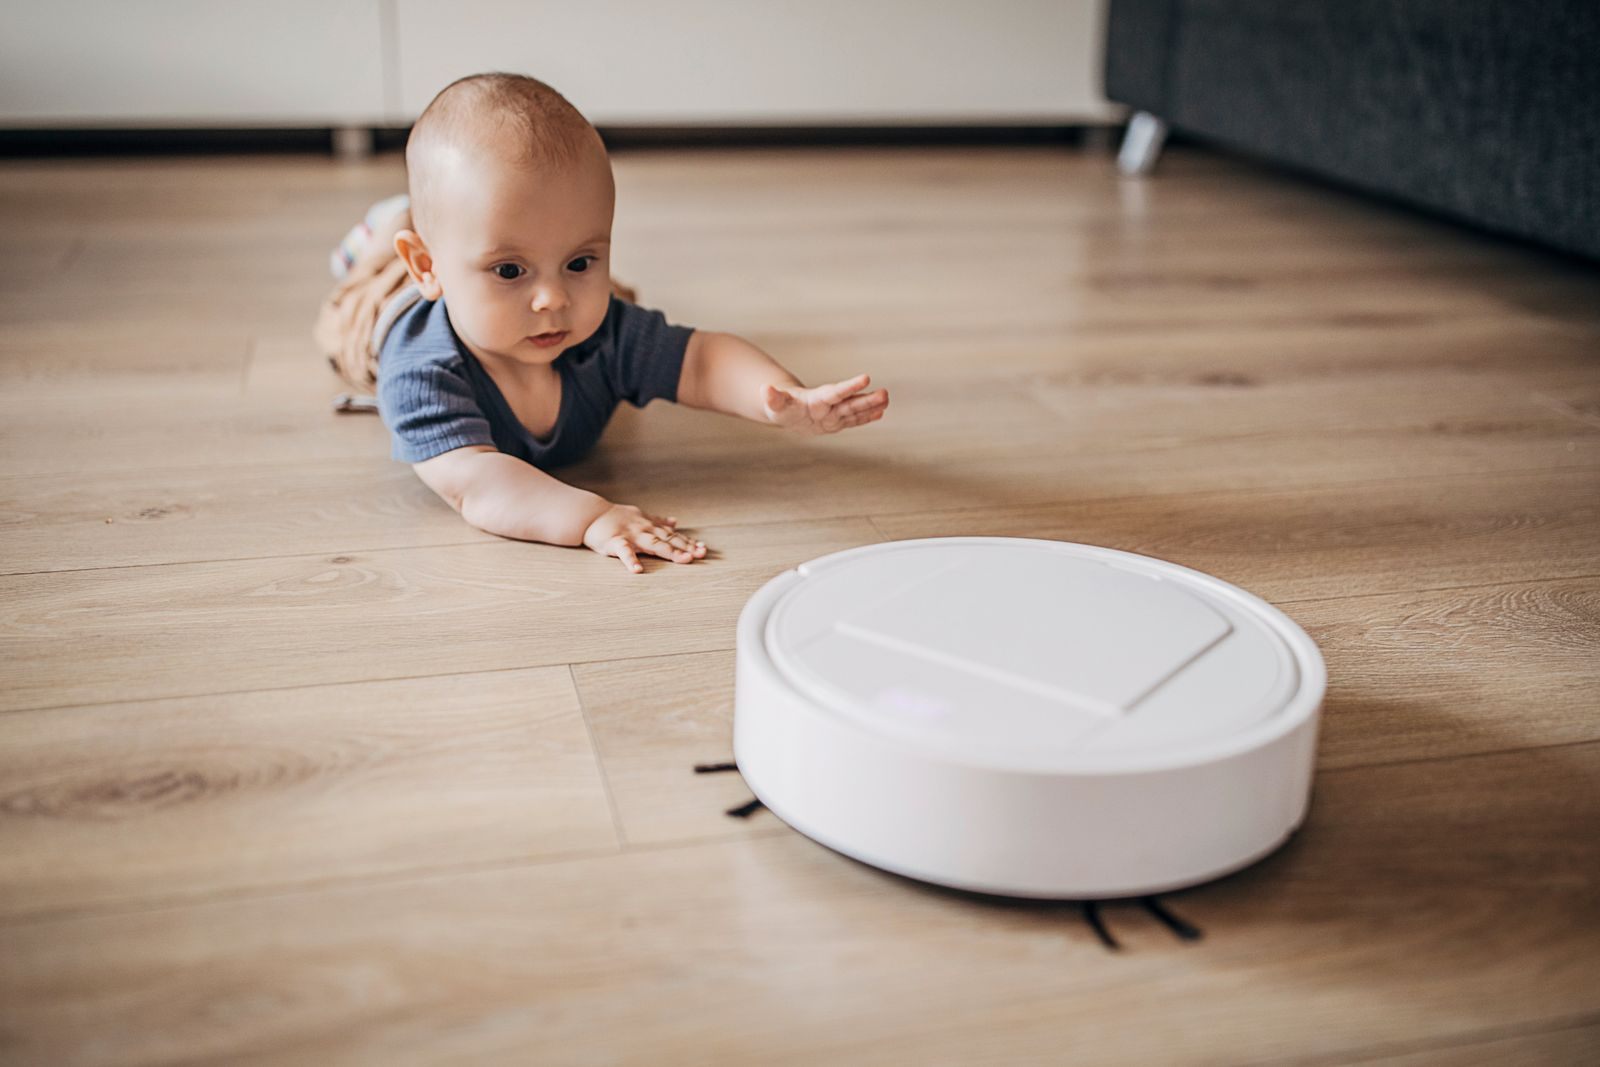 Baby boy discovering robotic vaccum cleaner